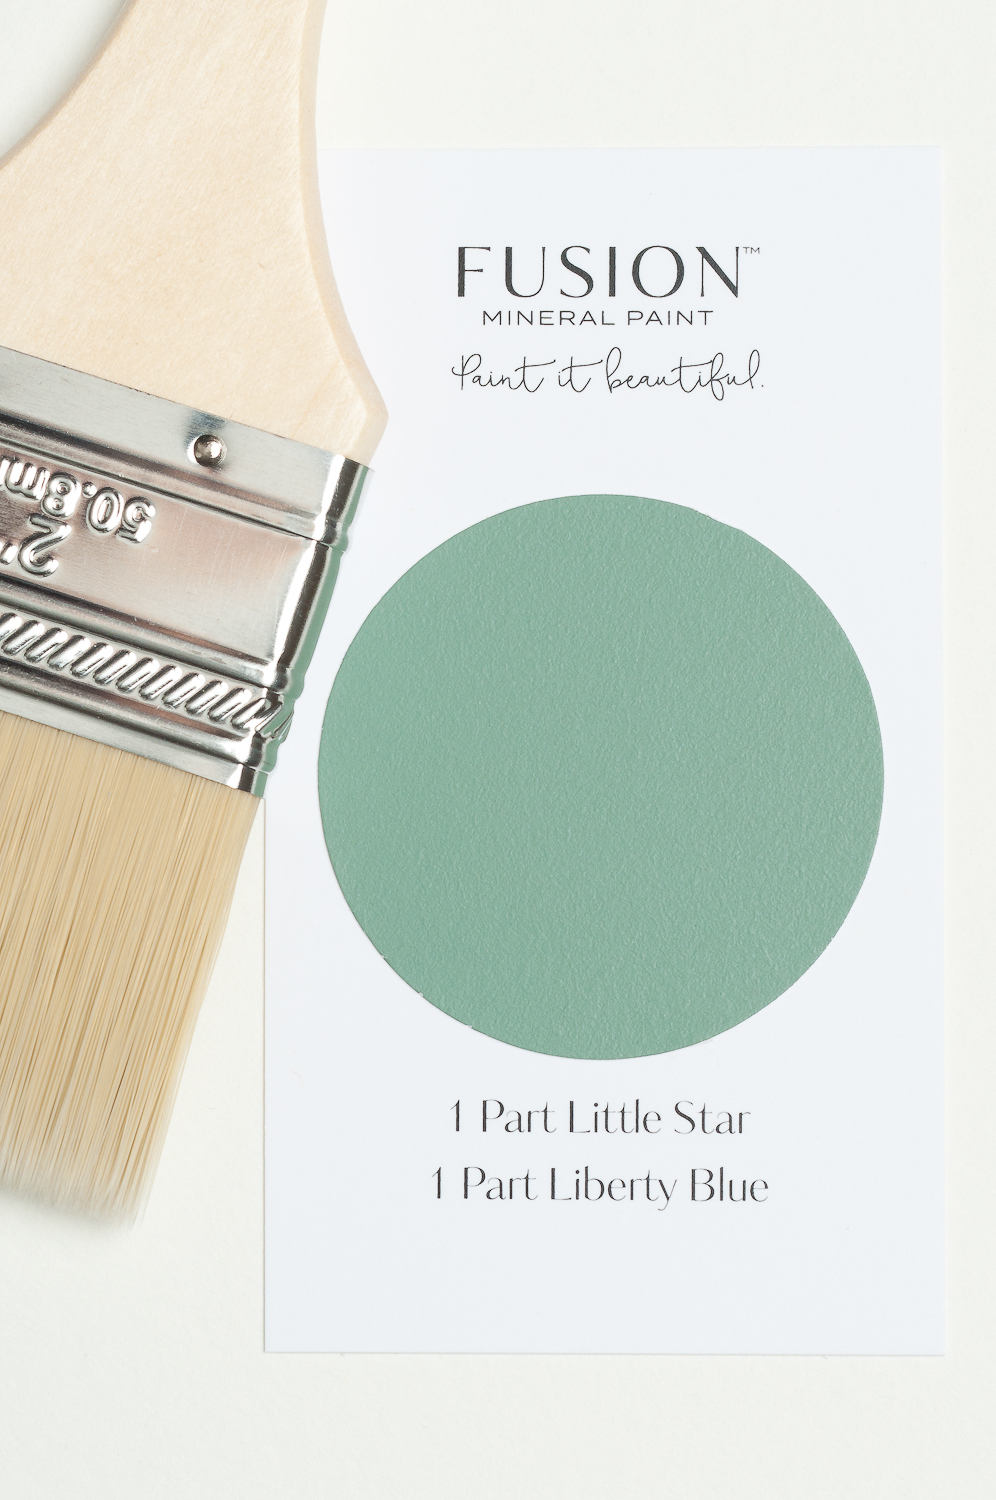 It's easy to mix Fusion Mineral Paint colours to create lovely shades like this.